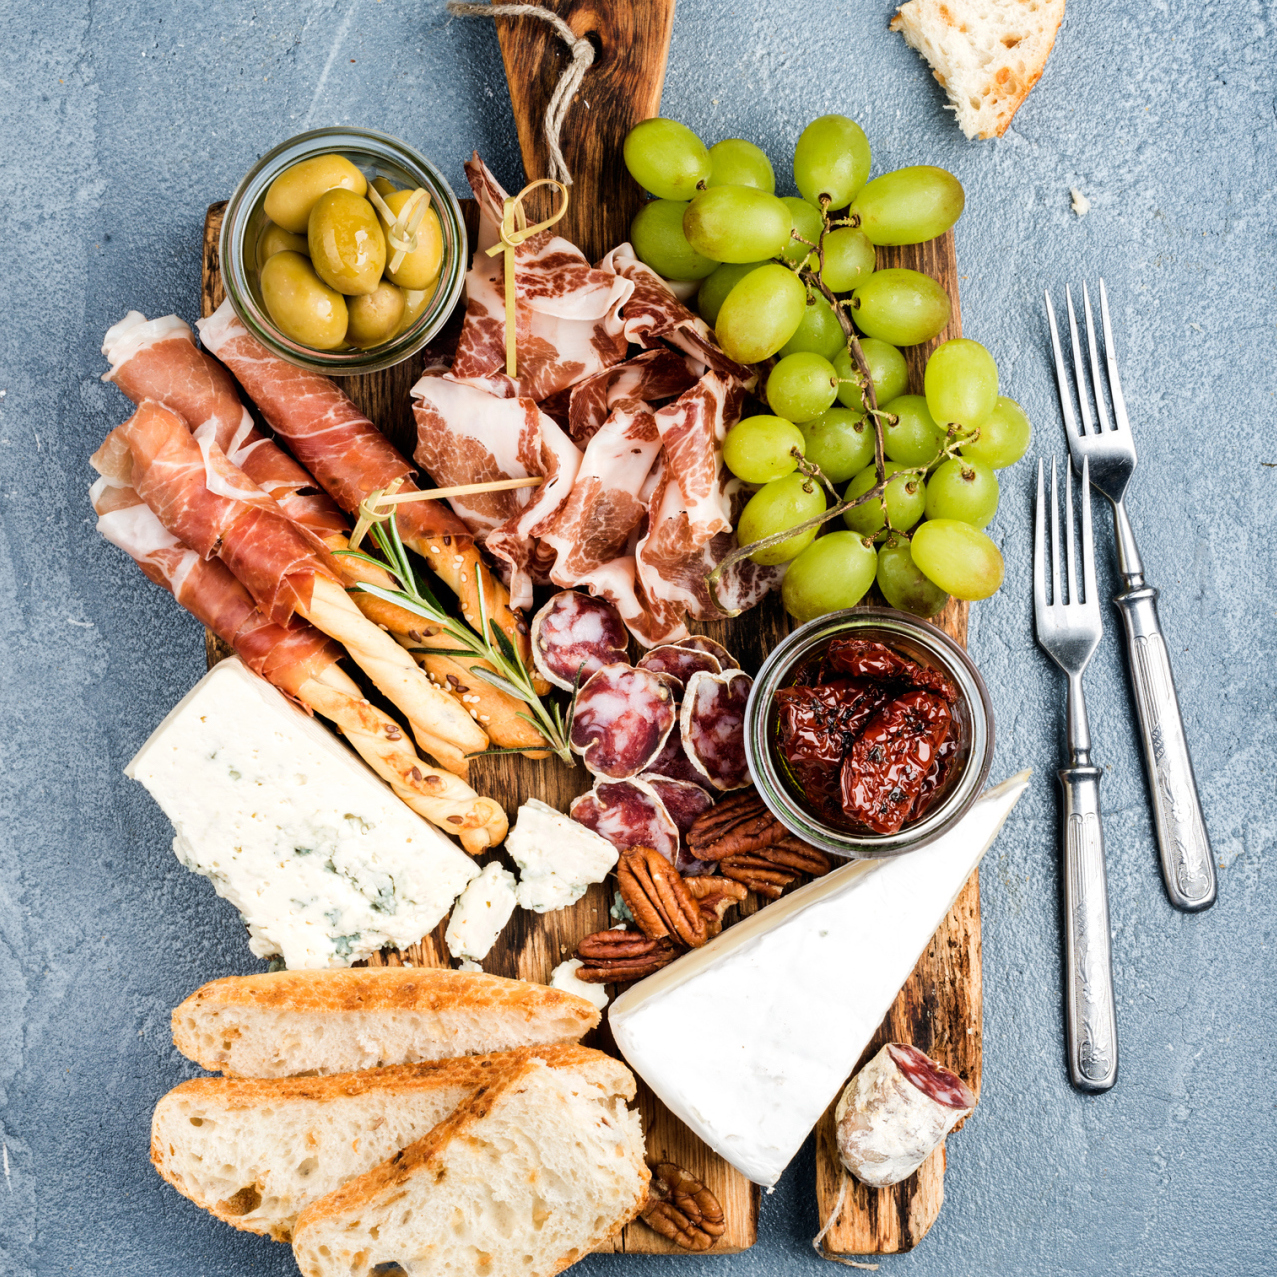 6 Tips For Building A Ballin Rsquo Cheese Board On A Budget Food Wine